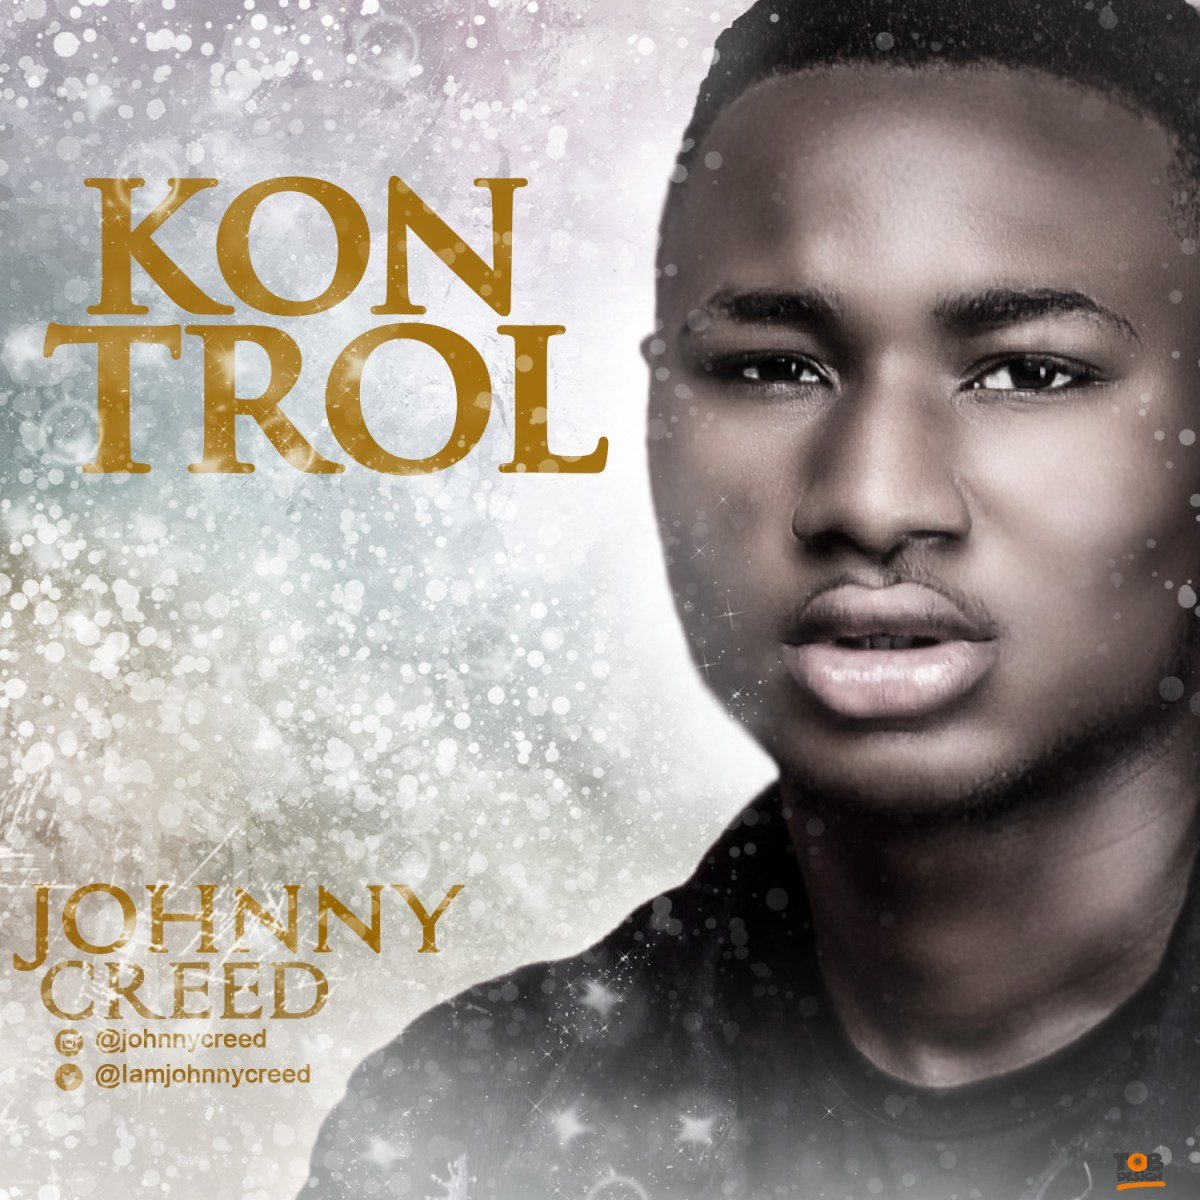 Johnny Creed - Kontrol